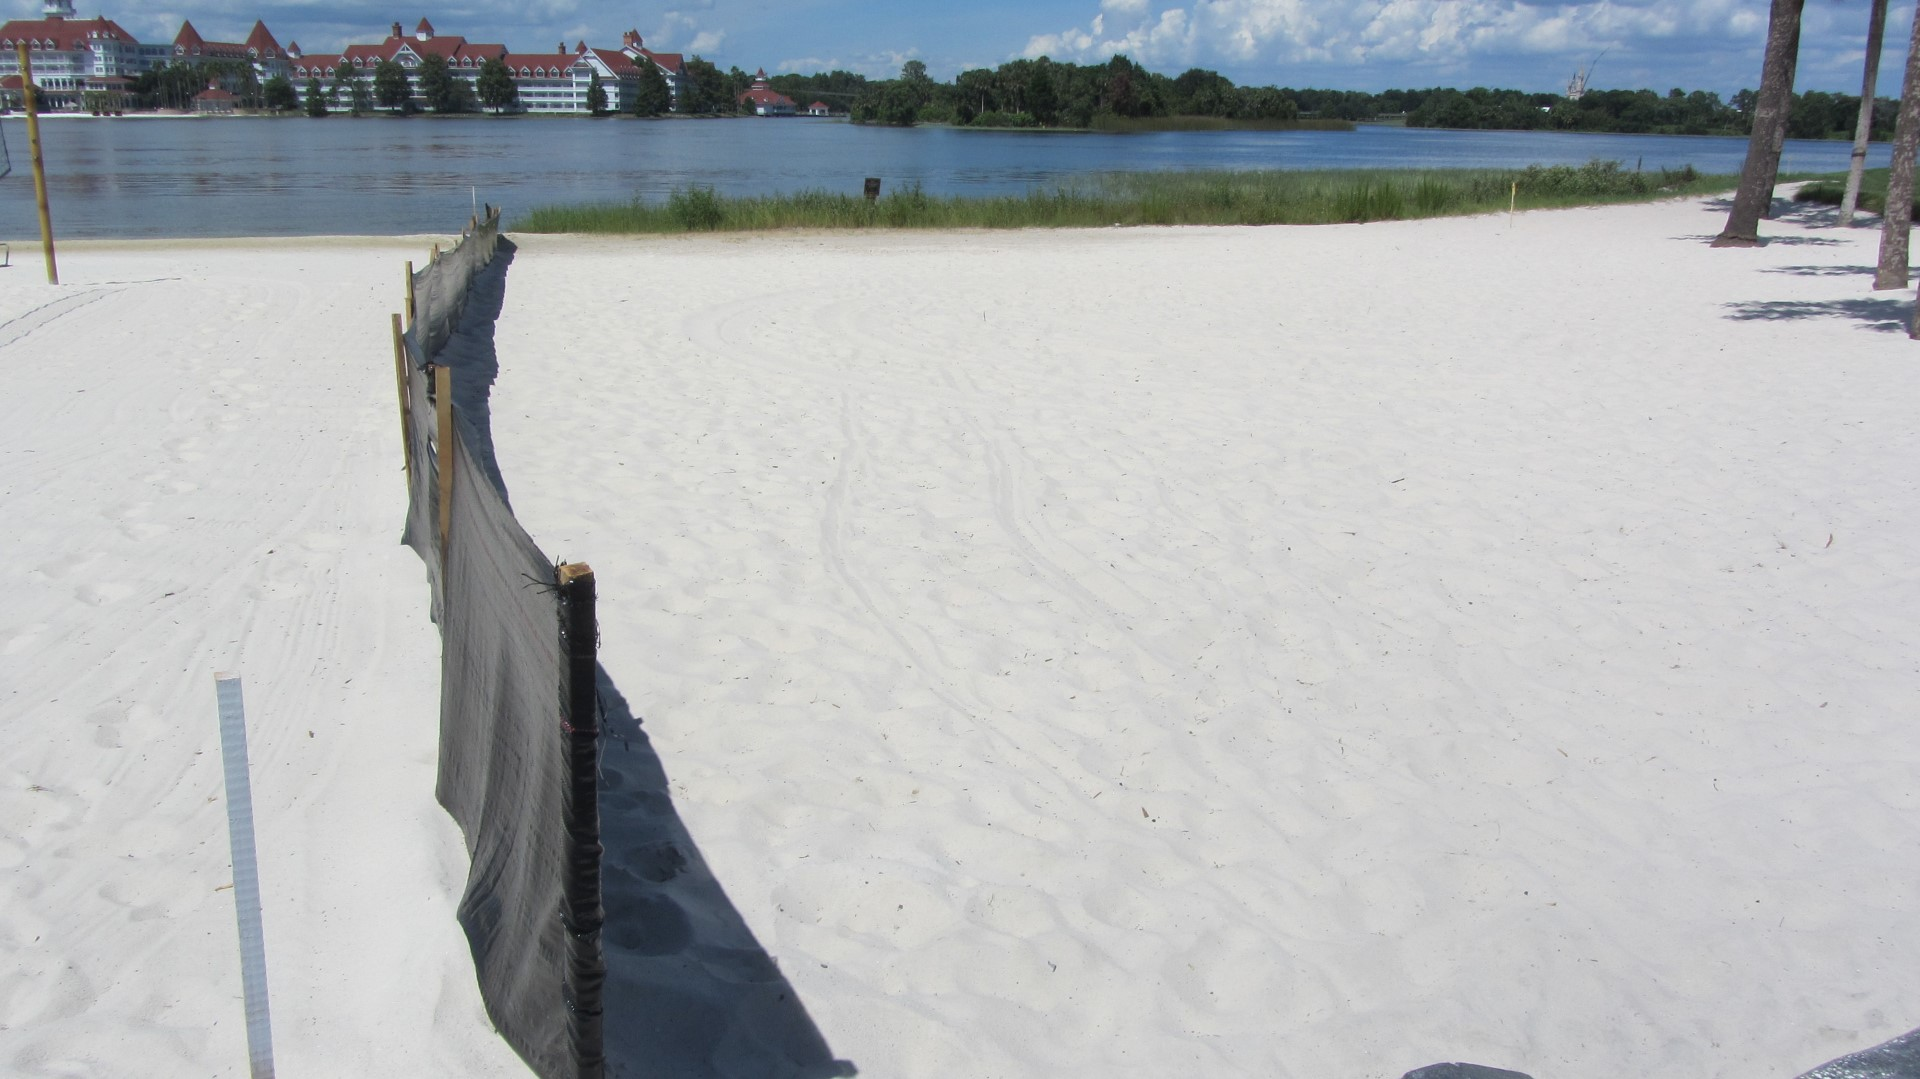 Construction barriers on the Poly beach